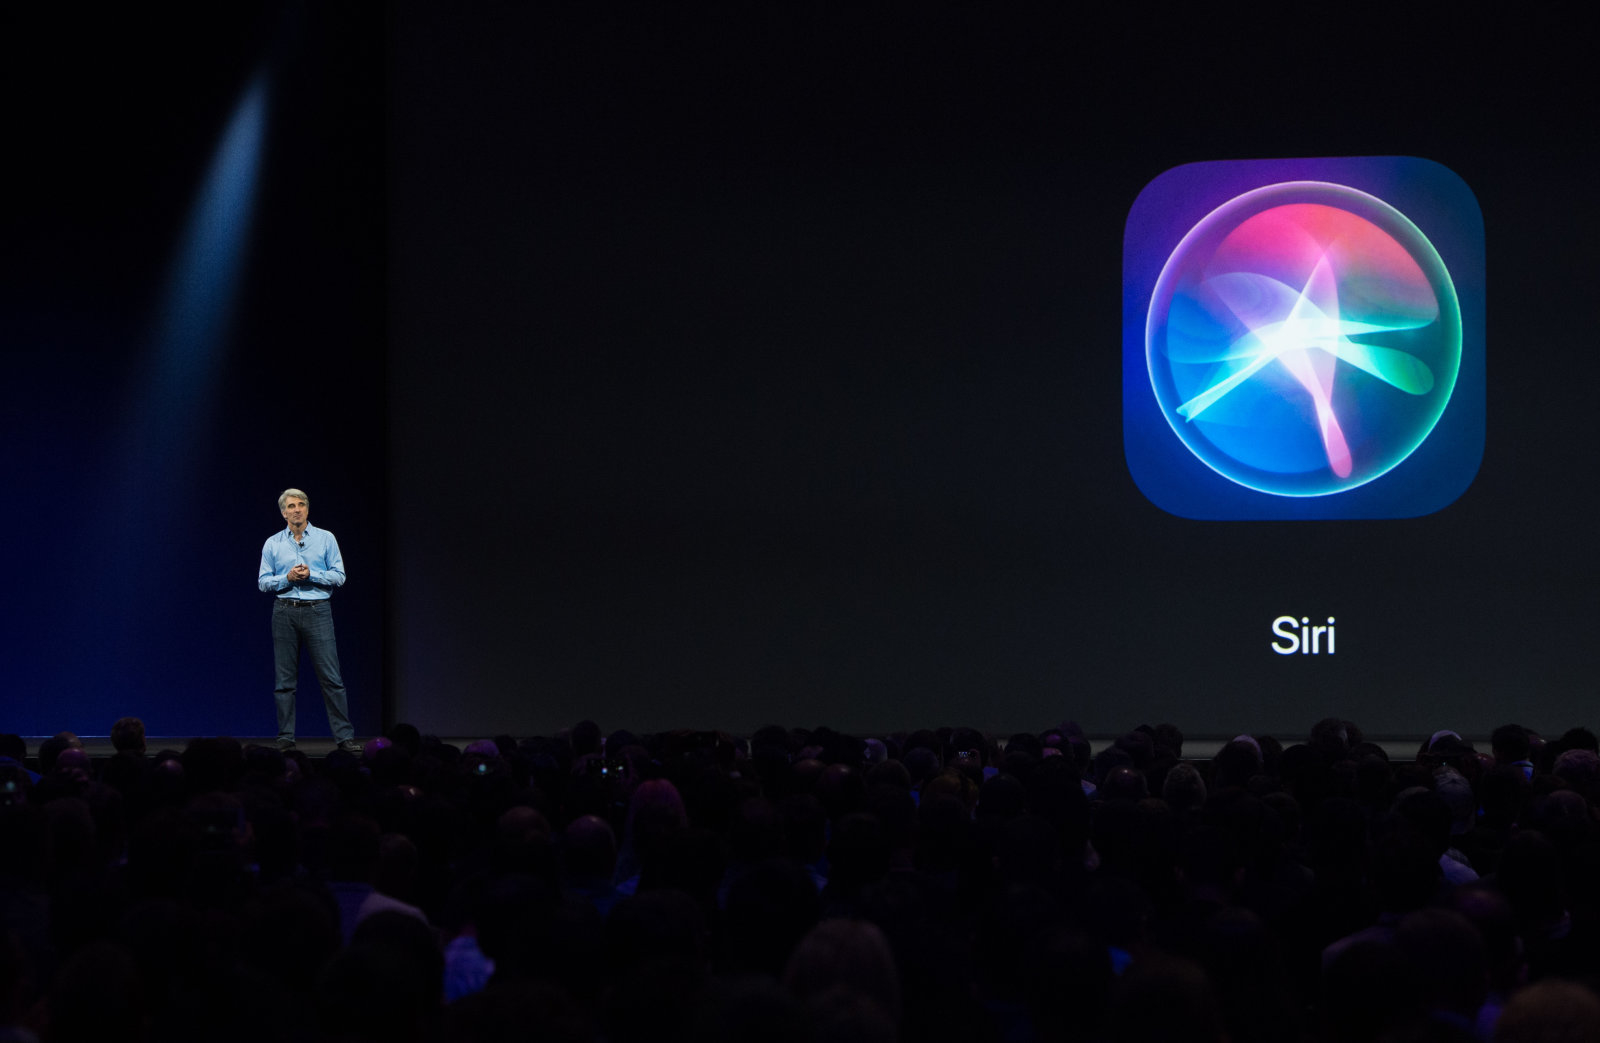 Apple's Senior Vice President of Software Engineering Craig Federighi speaks on stage during Apple's World Wide Developers Conference in San Jose, California on June 5, 2017. / AFP PHOTO / Josh Edelson        (Photo credit should read JOSH EDELSON/AFP/Getty Images)